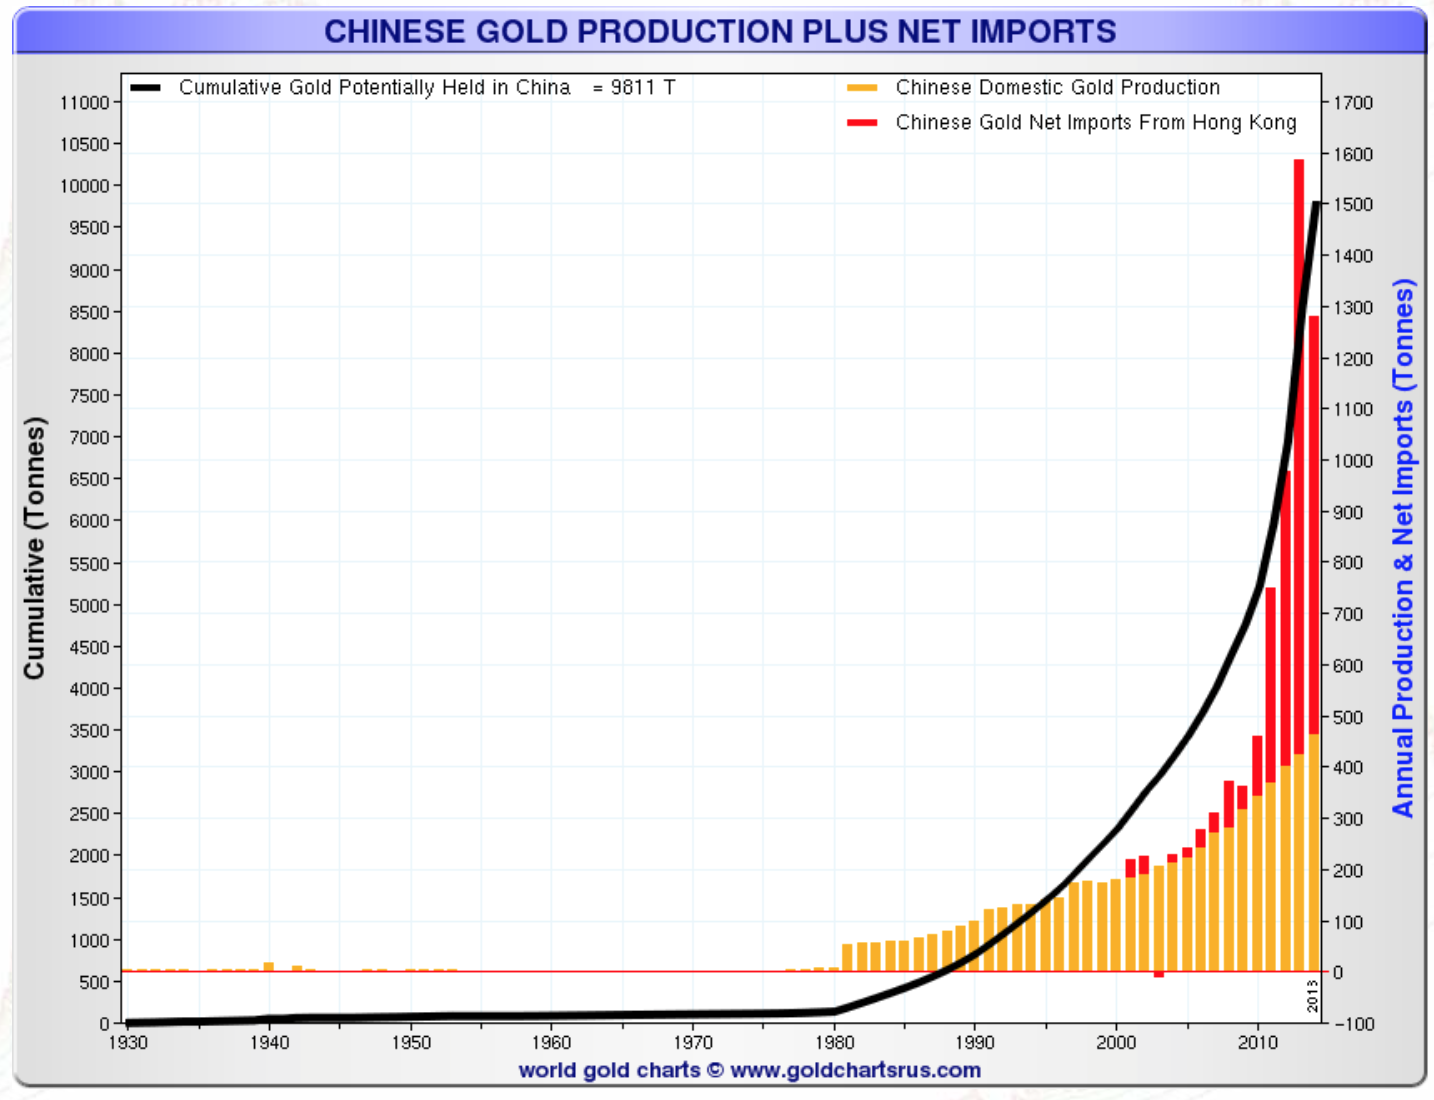 Production chinoise d'or plus importations nettes